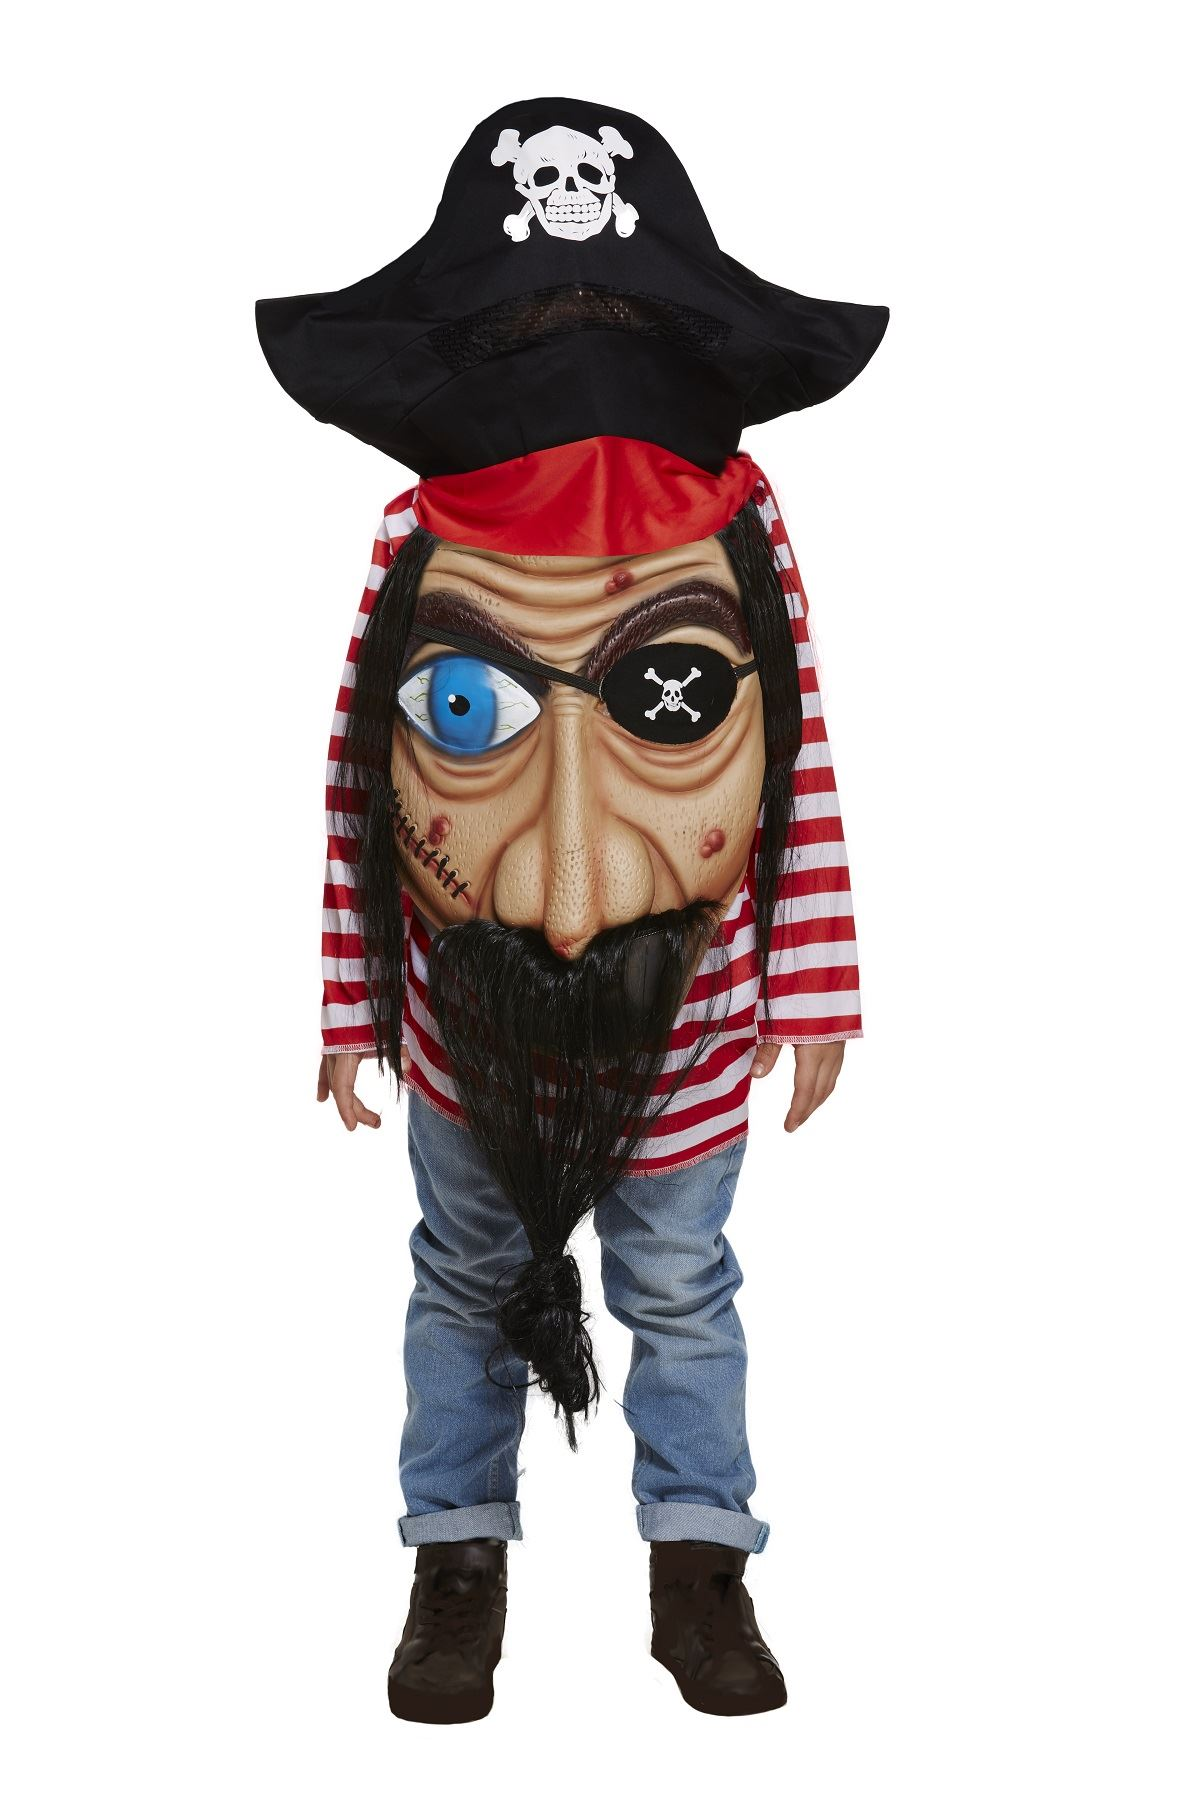 Kids-Adult-Jumbo-Giant-Pirate-Face-Halloween-Costume-  sc 1 st  eBay & Kids Adult Jumbo Giant Pirate Face Halloween Costume Fancy Dress ...